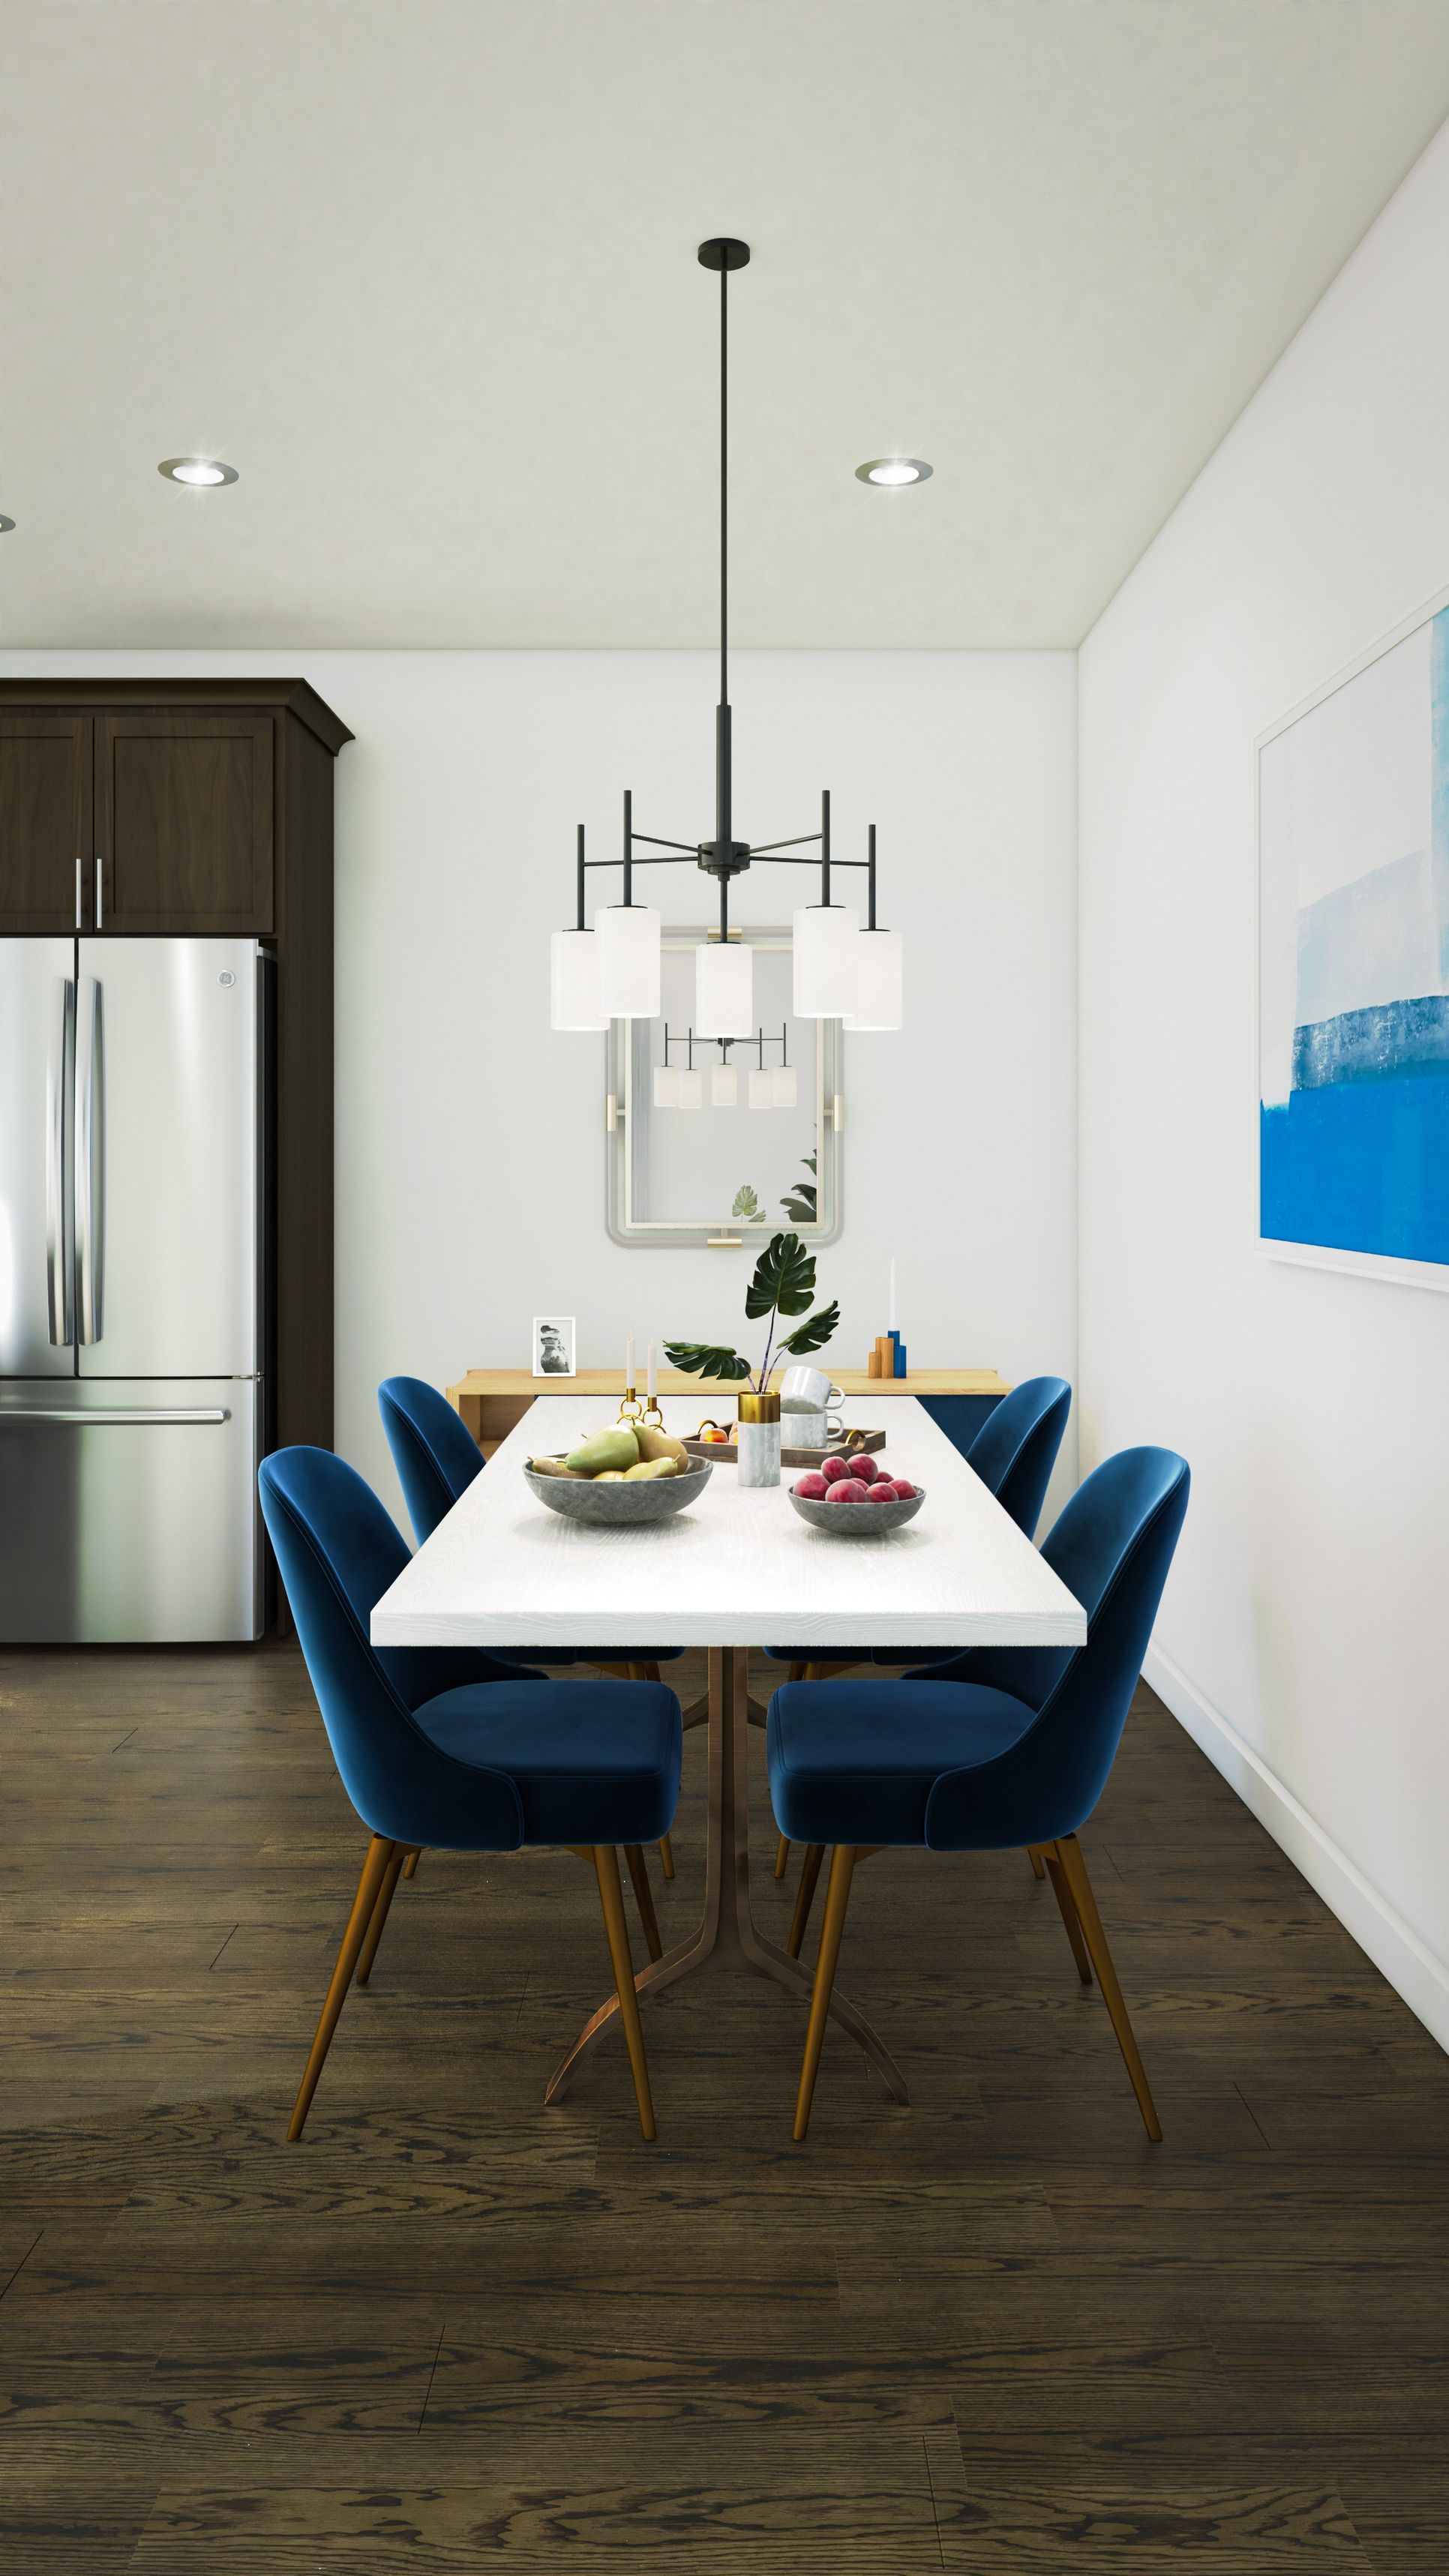 Interior:Kitchen with dining area